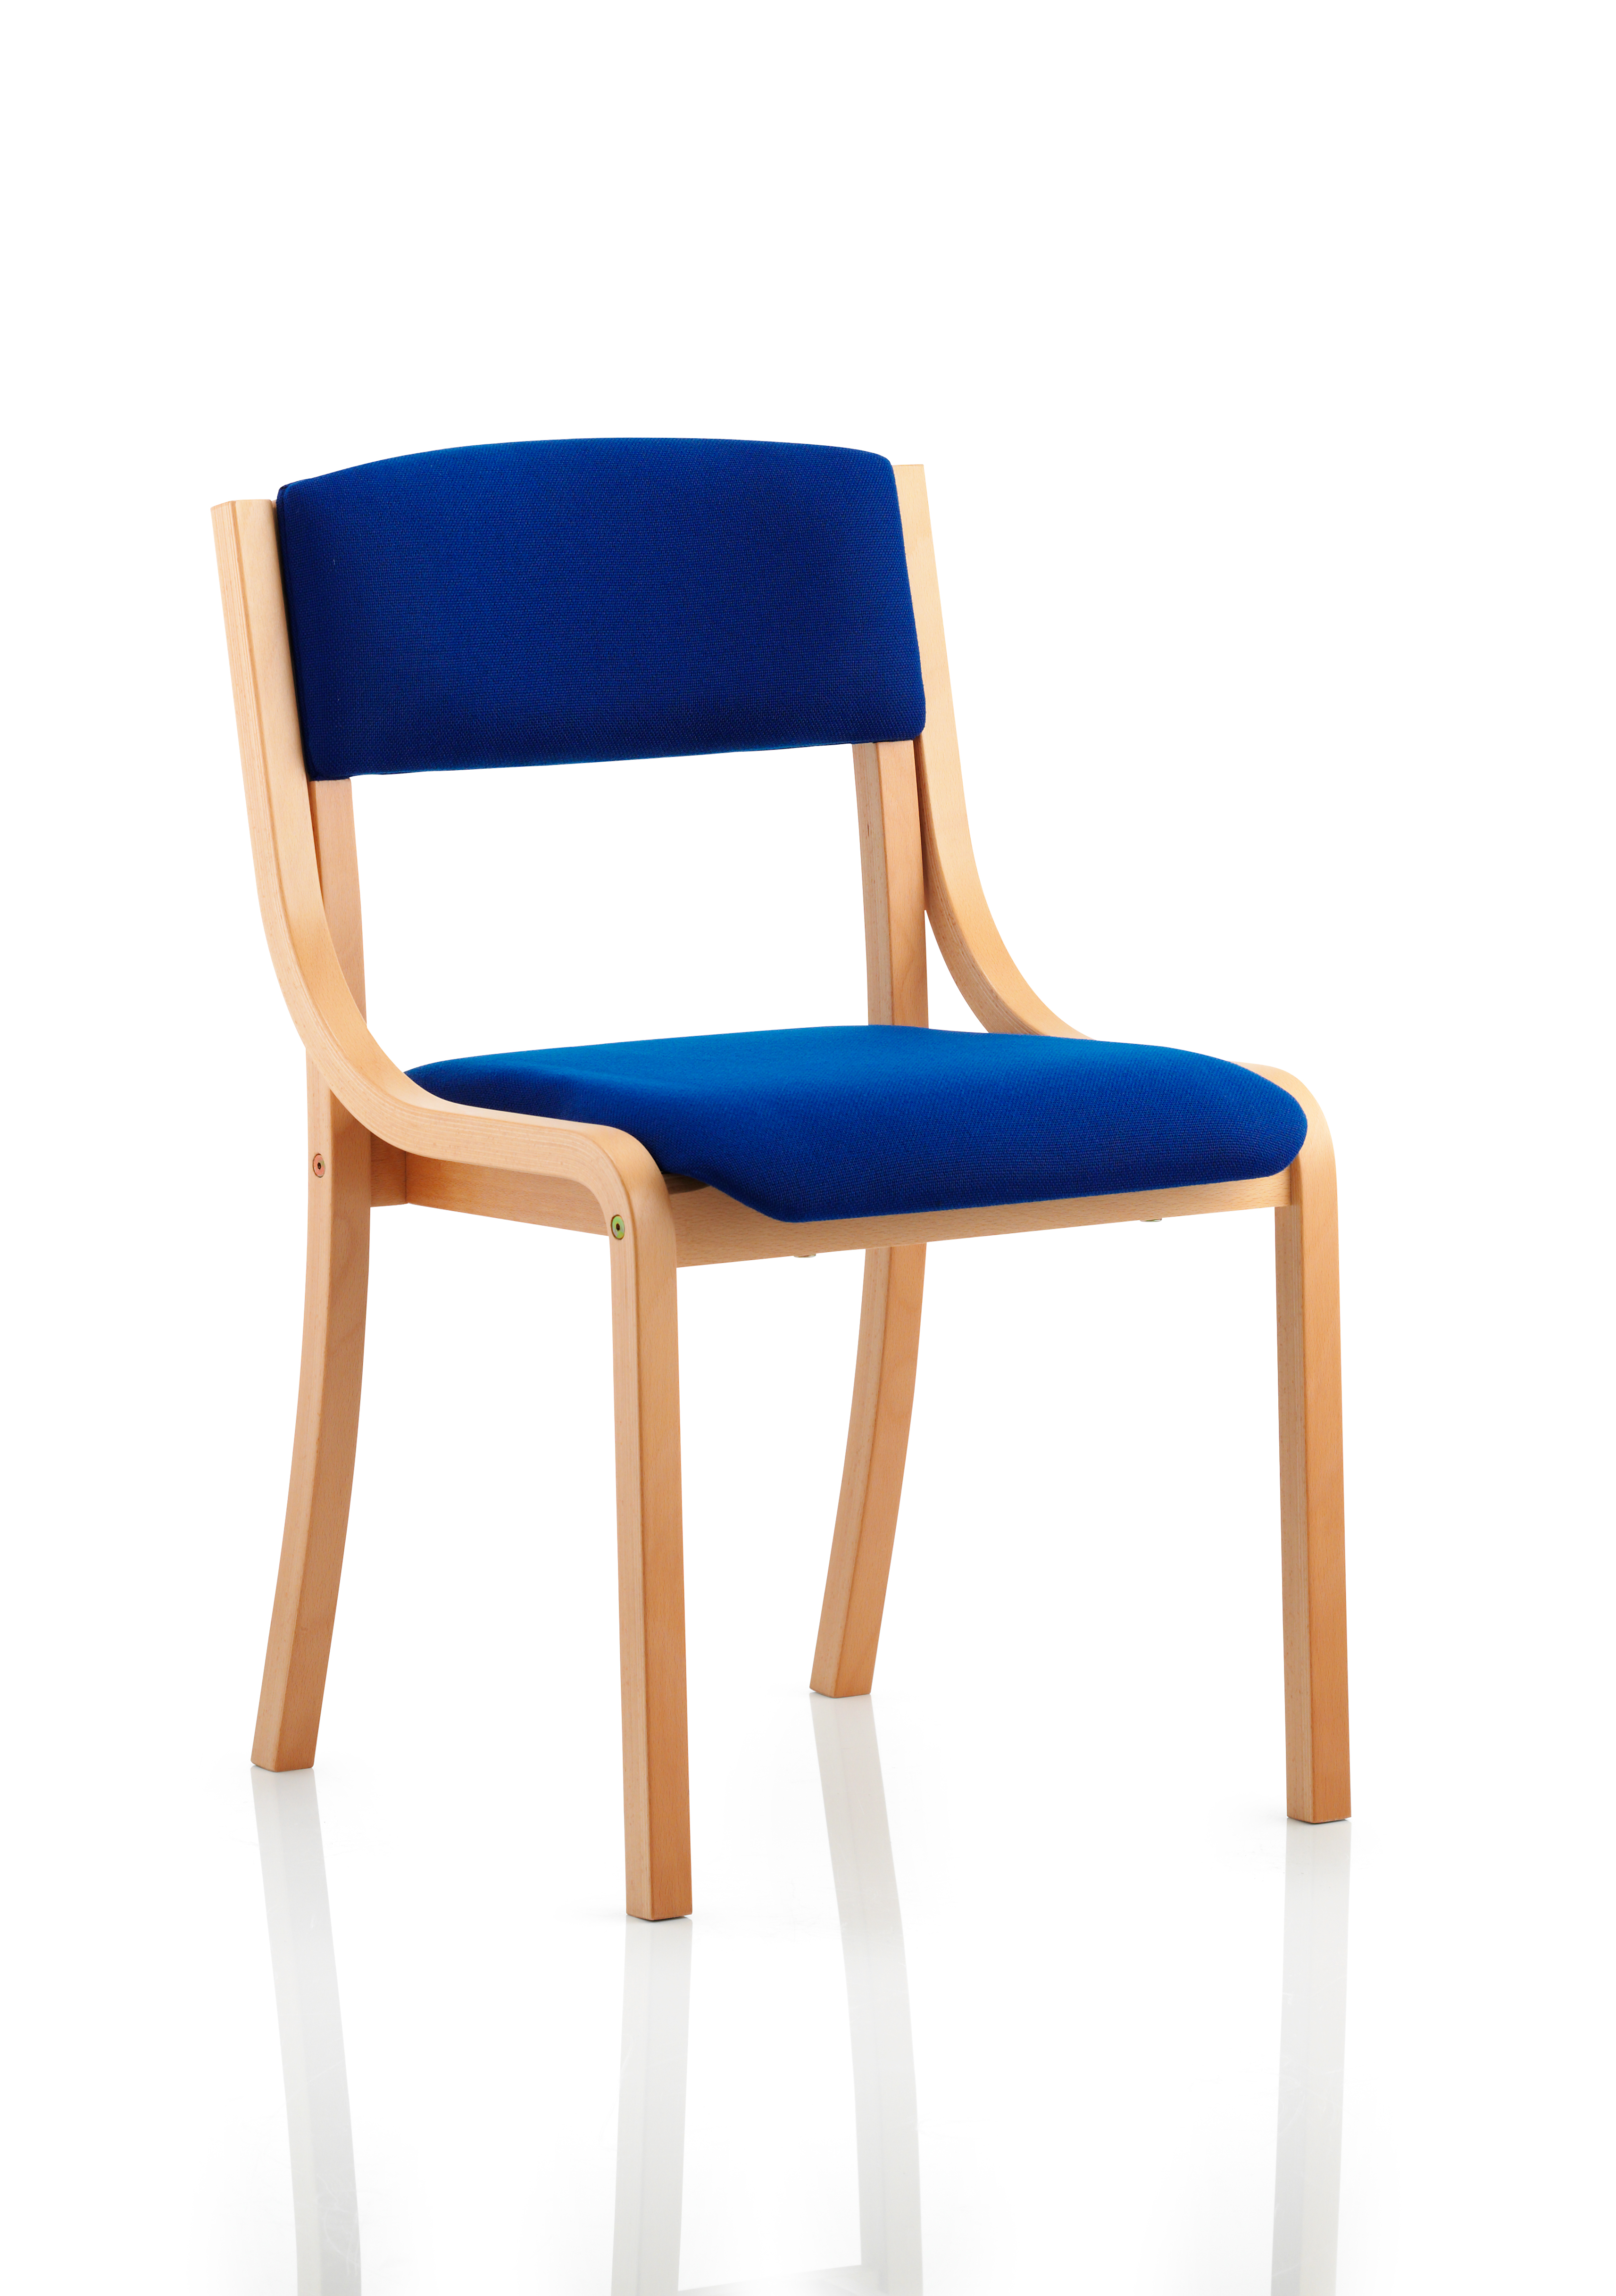 Stacking Chairs Madrid Visitor Chair Blue BR000087